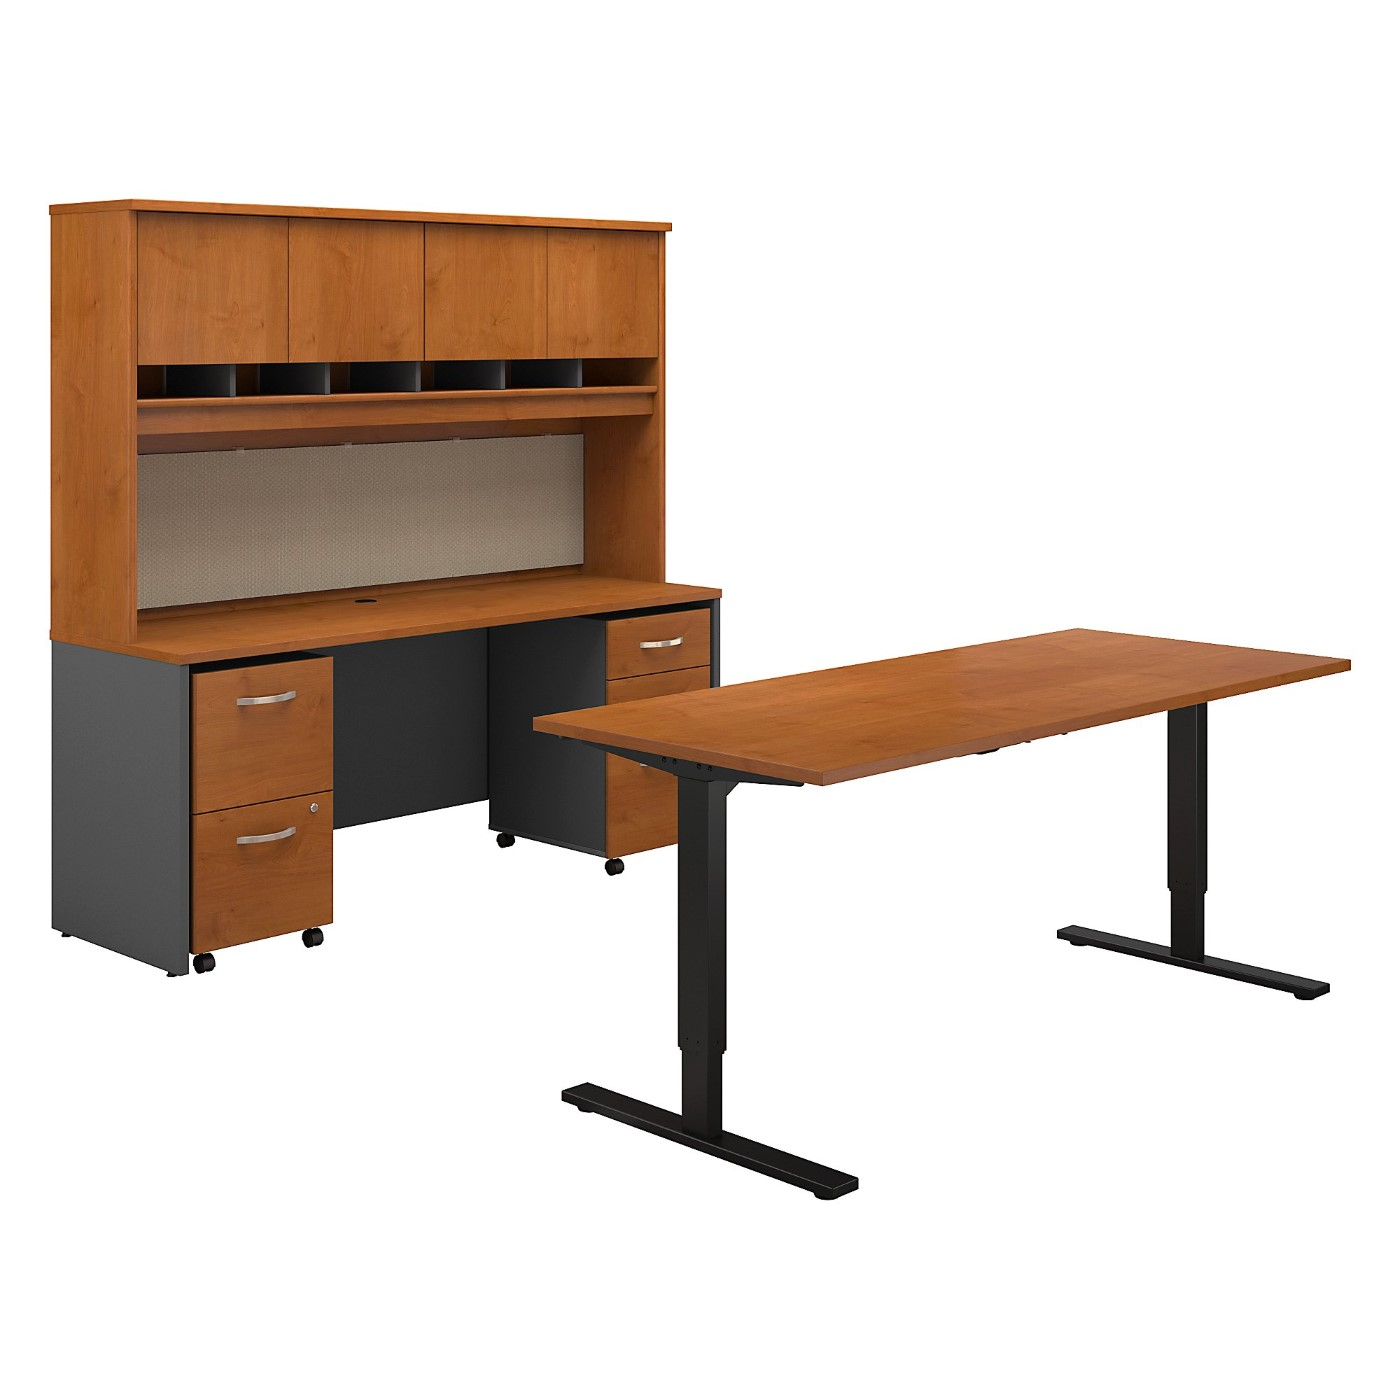 BUSH BUSINESS FURNITURE SERIES C 72W HEIGHT ADJUSTABLE STANDING DESK, CREDENZA, HUTCH AND STORAGE. FREE SHIPPING